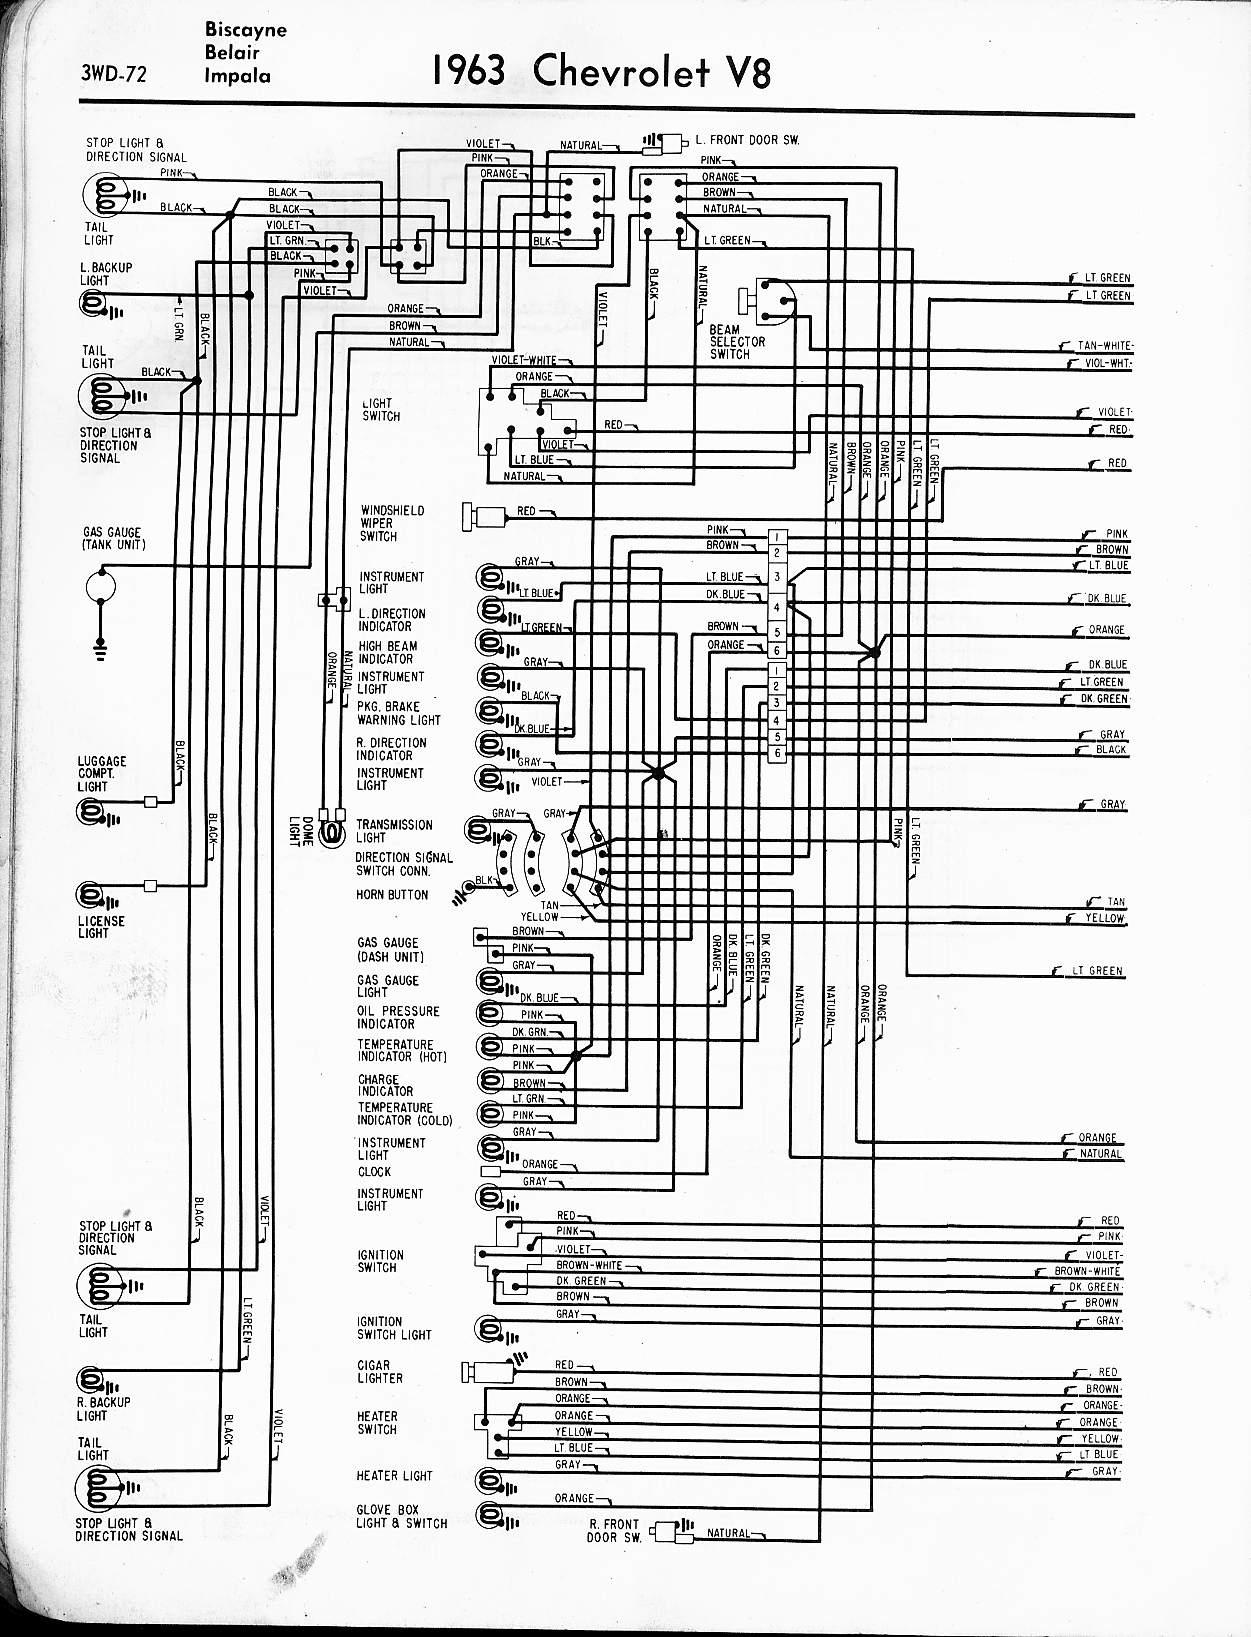 [DIAGRAM_4PO]  Stereo Wiring Diagram 2005 Chevy Impala Diagram Base Website Chevy Impala -  D3VENNDIAGRAM.ATTENTIALLUOMO.IT | 05 Chevy Impala Ignition Switch Wiring Diagram |  | attentialluomo